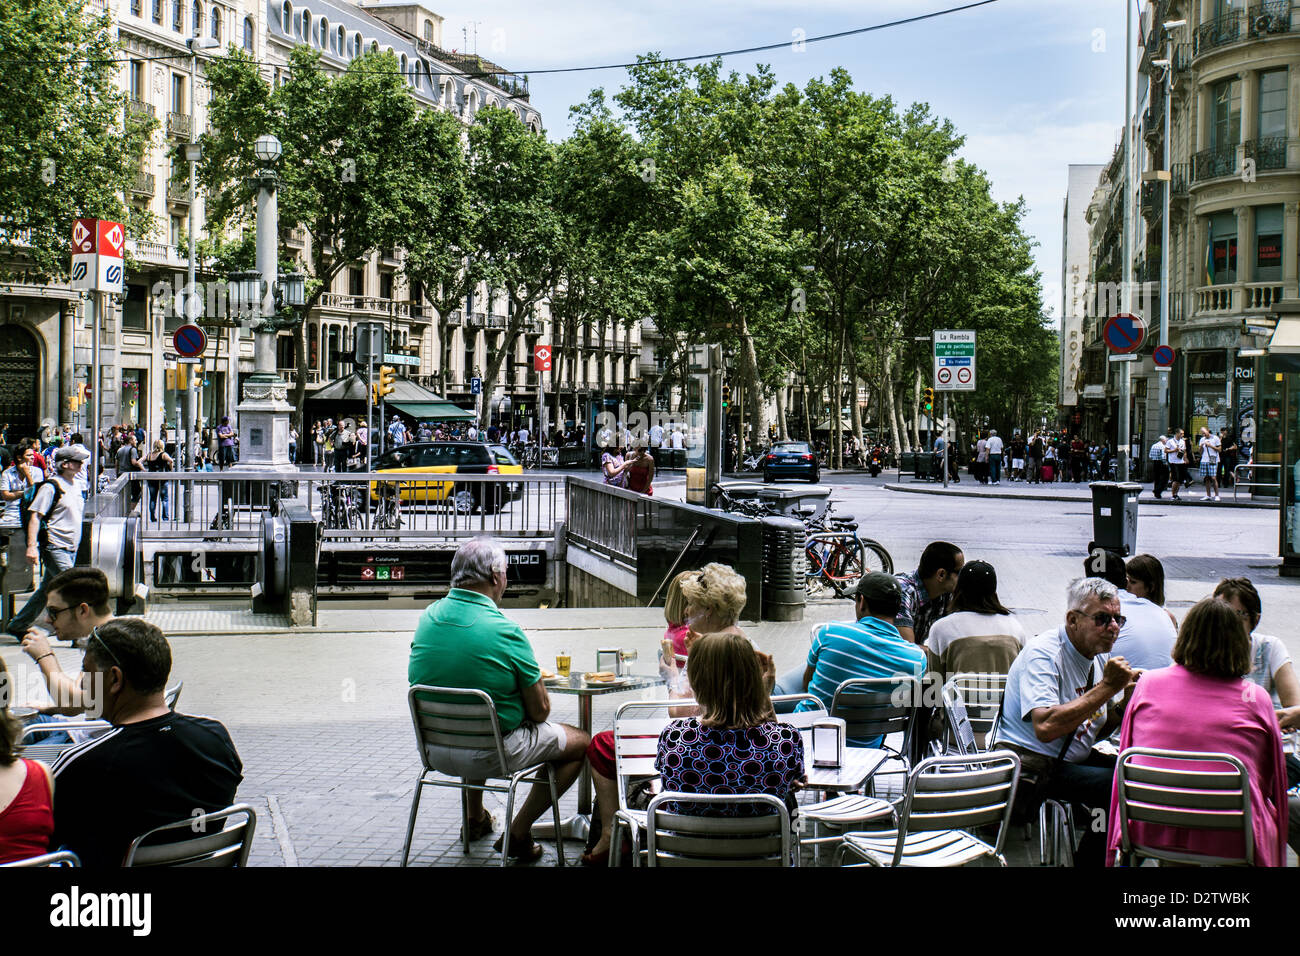 Entrance to La Ramble shopping and entertainment street in Barcelona Spain with tourists and diners enjoying afternoon - Stock Image